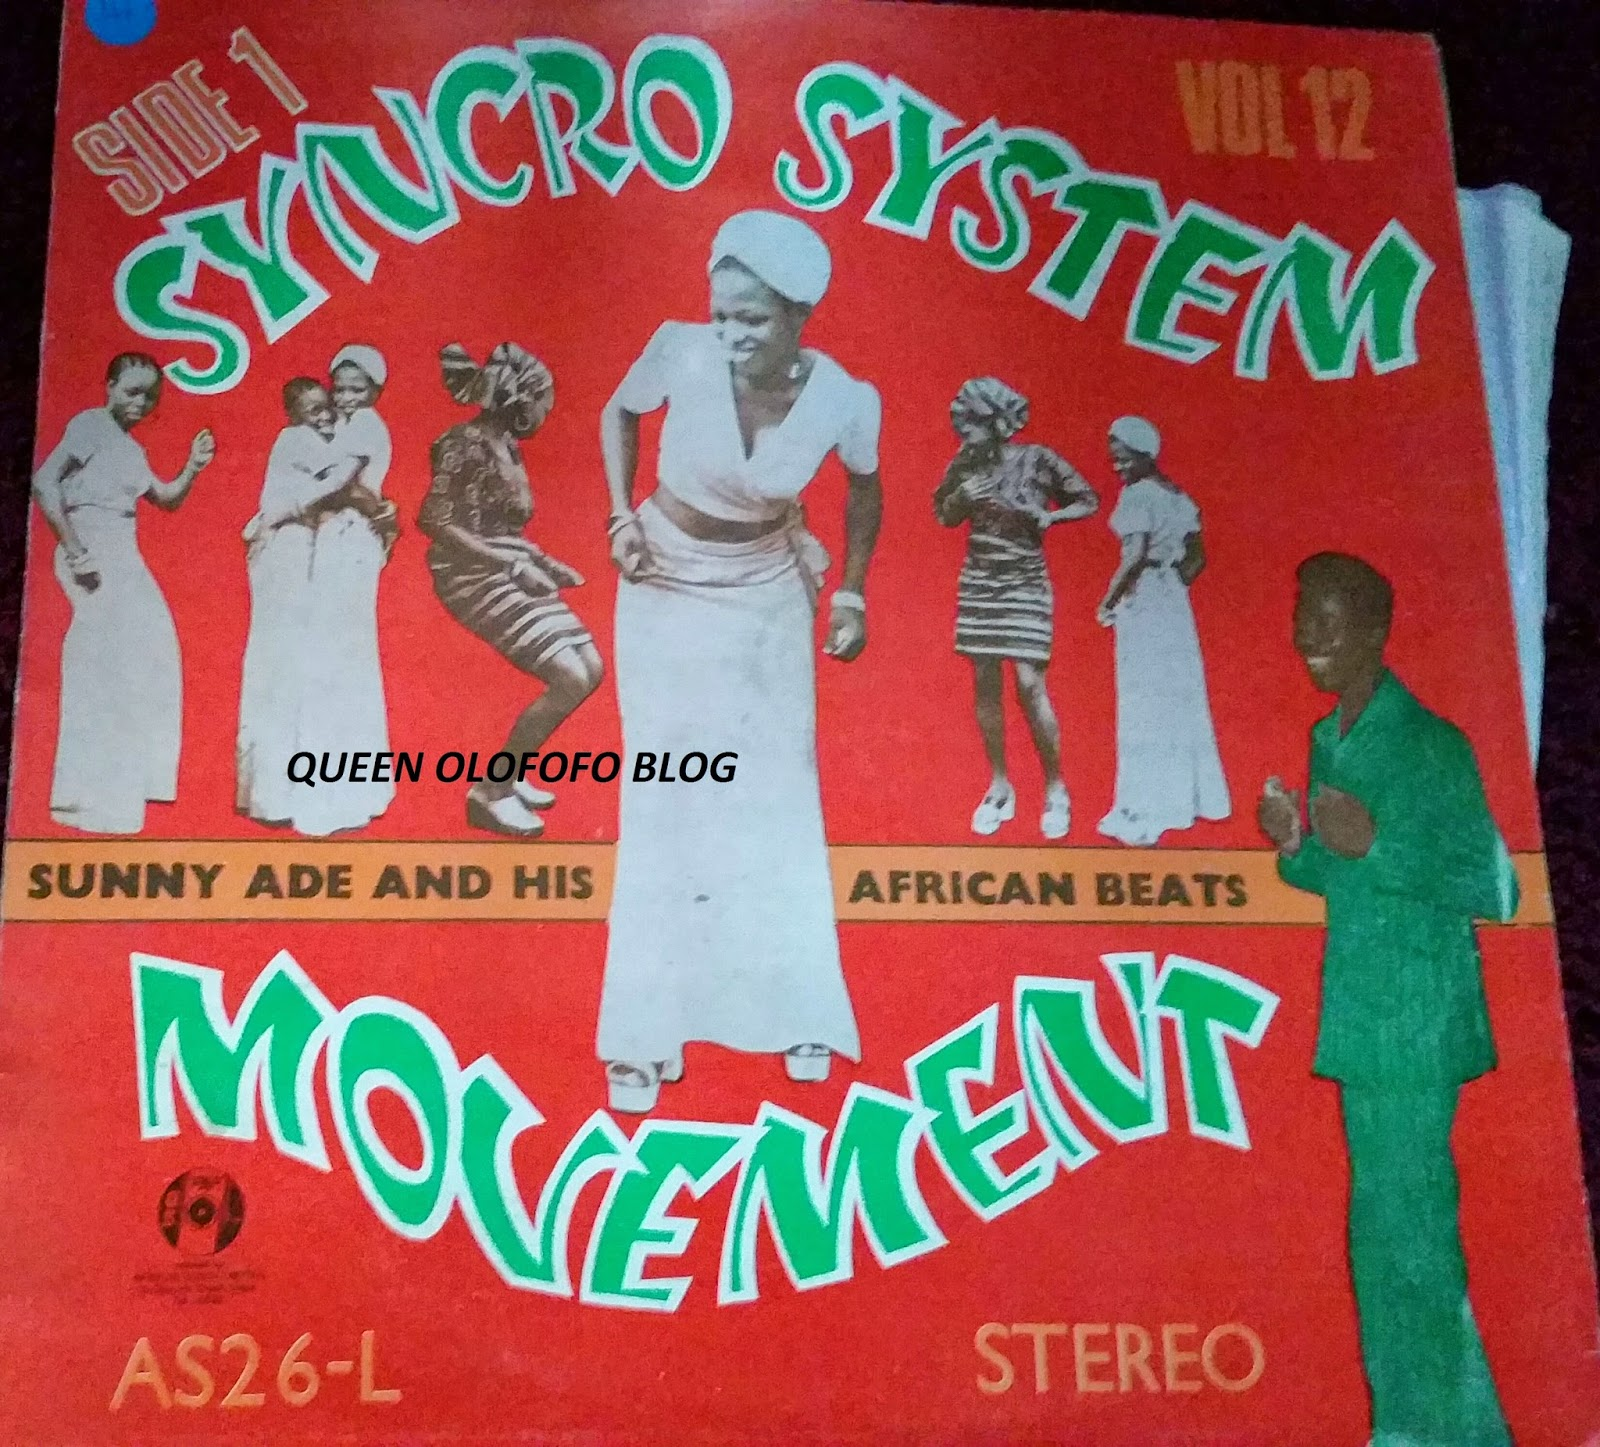 syncro system was one of Sunny ade's best work